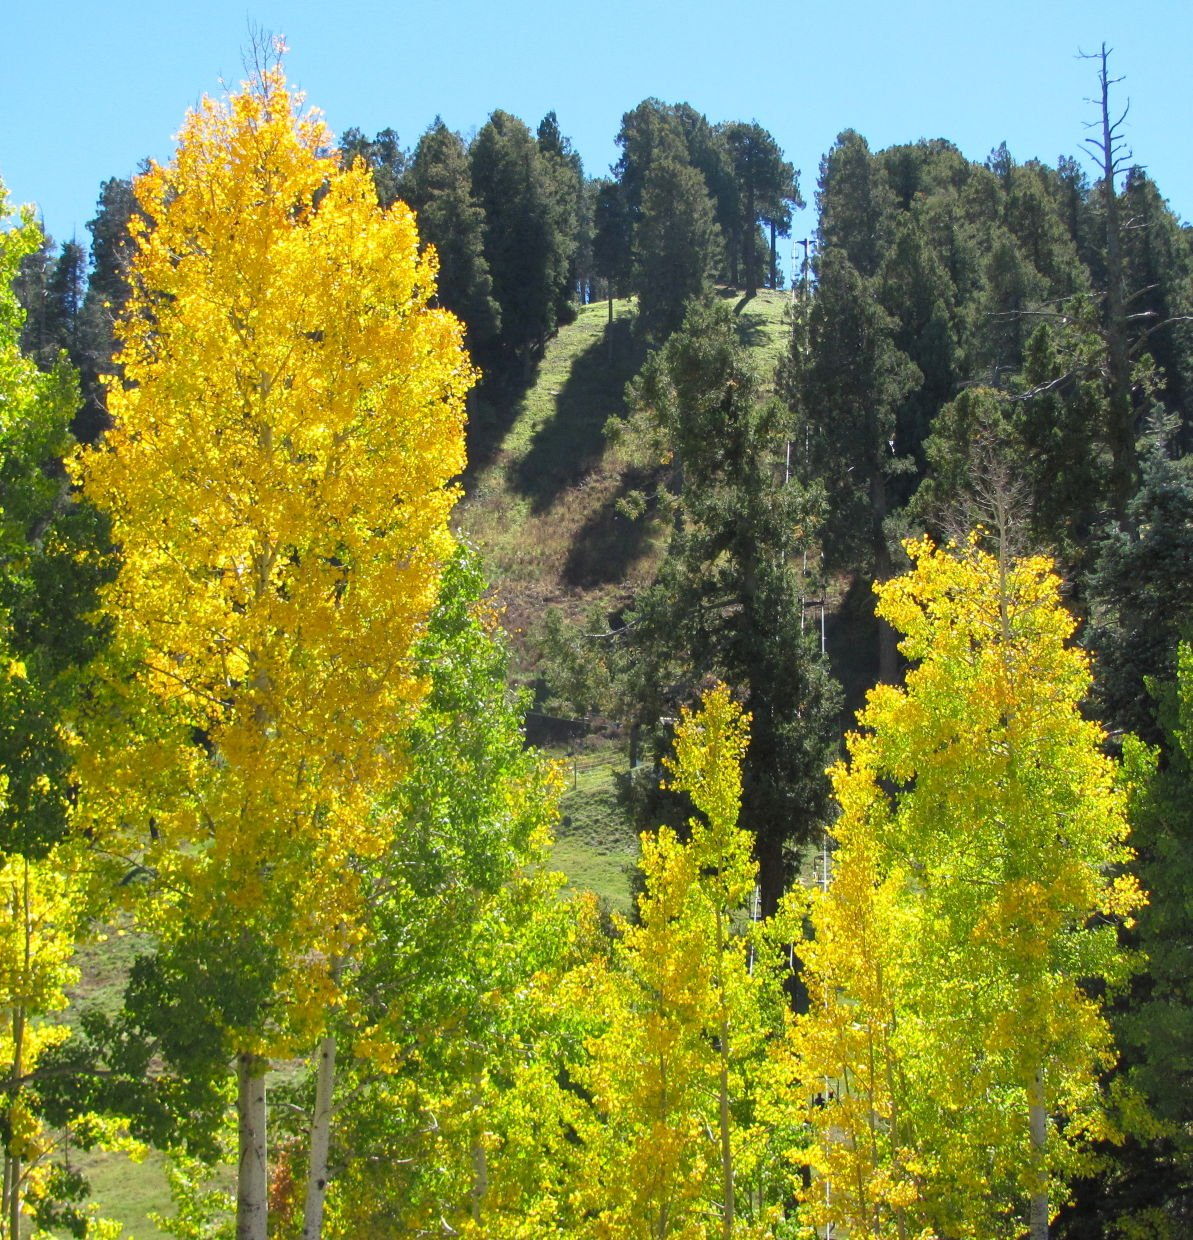 Photos: Fall foliage in Southern Arizona | Outdoors and Events ...